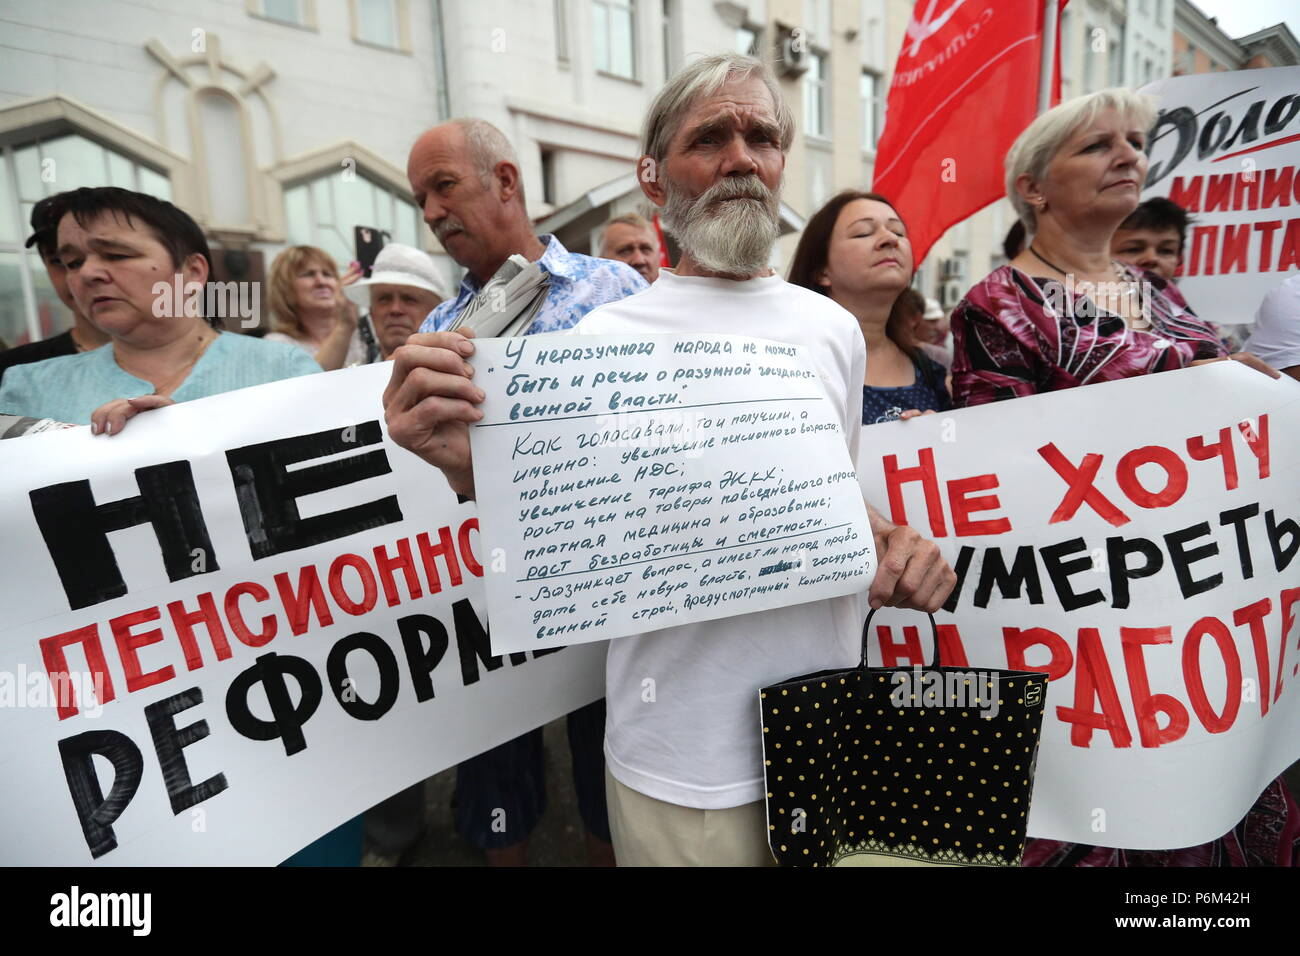 Ivanovo, Russia. 01st July, 2018. IVANOVO, RUSSIA - JULY 1, 2018: People in a protest against a draft law proposed by the Russian government to raise the retirement age for men from 60 to 65 years old and for women from 55 to 63 years old. Vladimir Smirnov/TASS Credit: ITAR-TASS News Agency/Alamy Live News - Stock Image